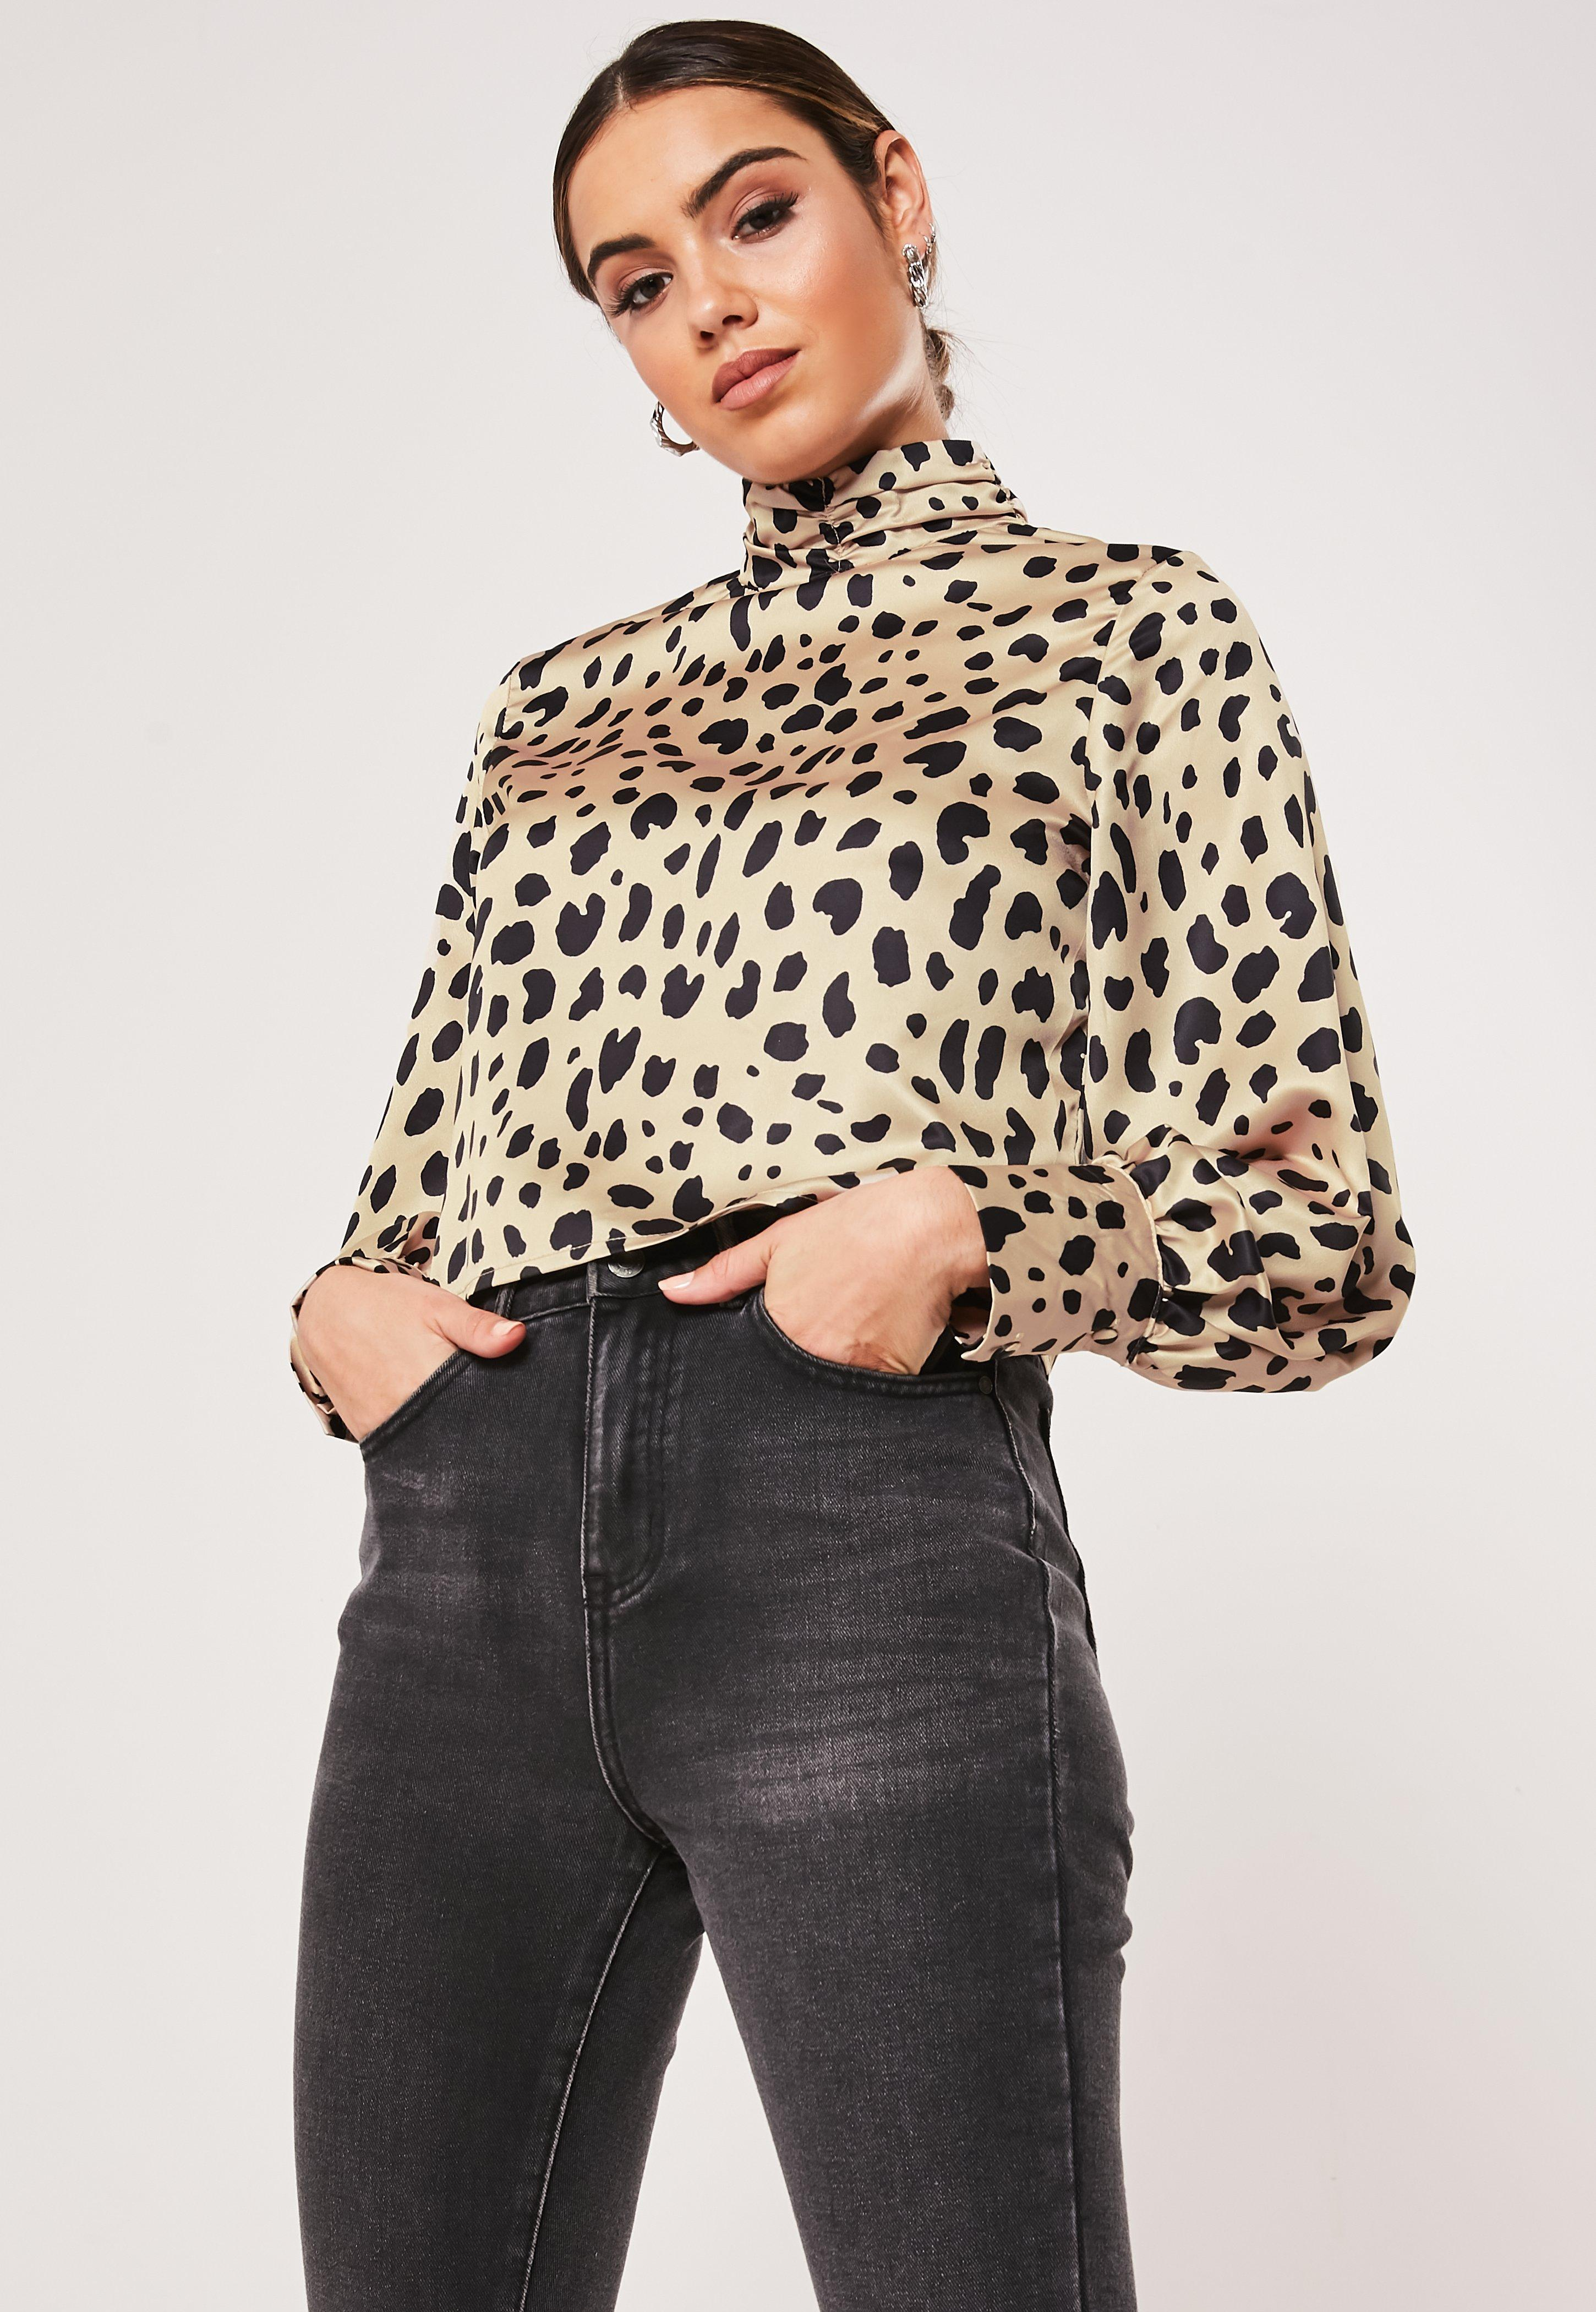 Animal Print Collared Turn Up Sleeves Top Blouse Size  8-20